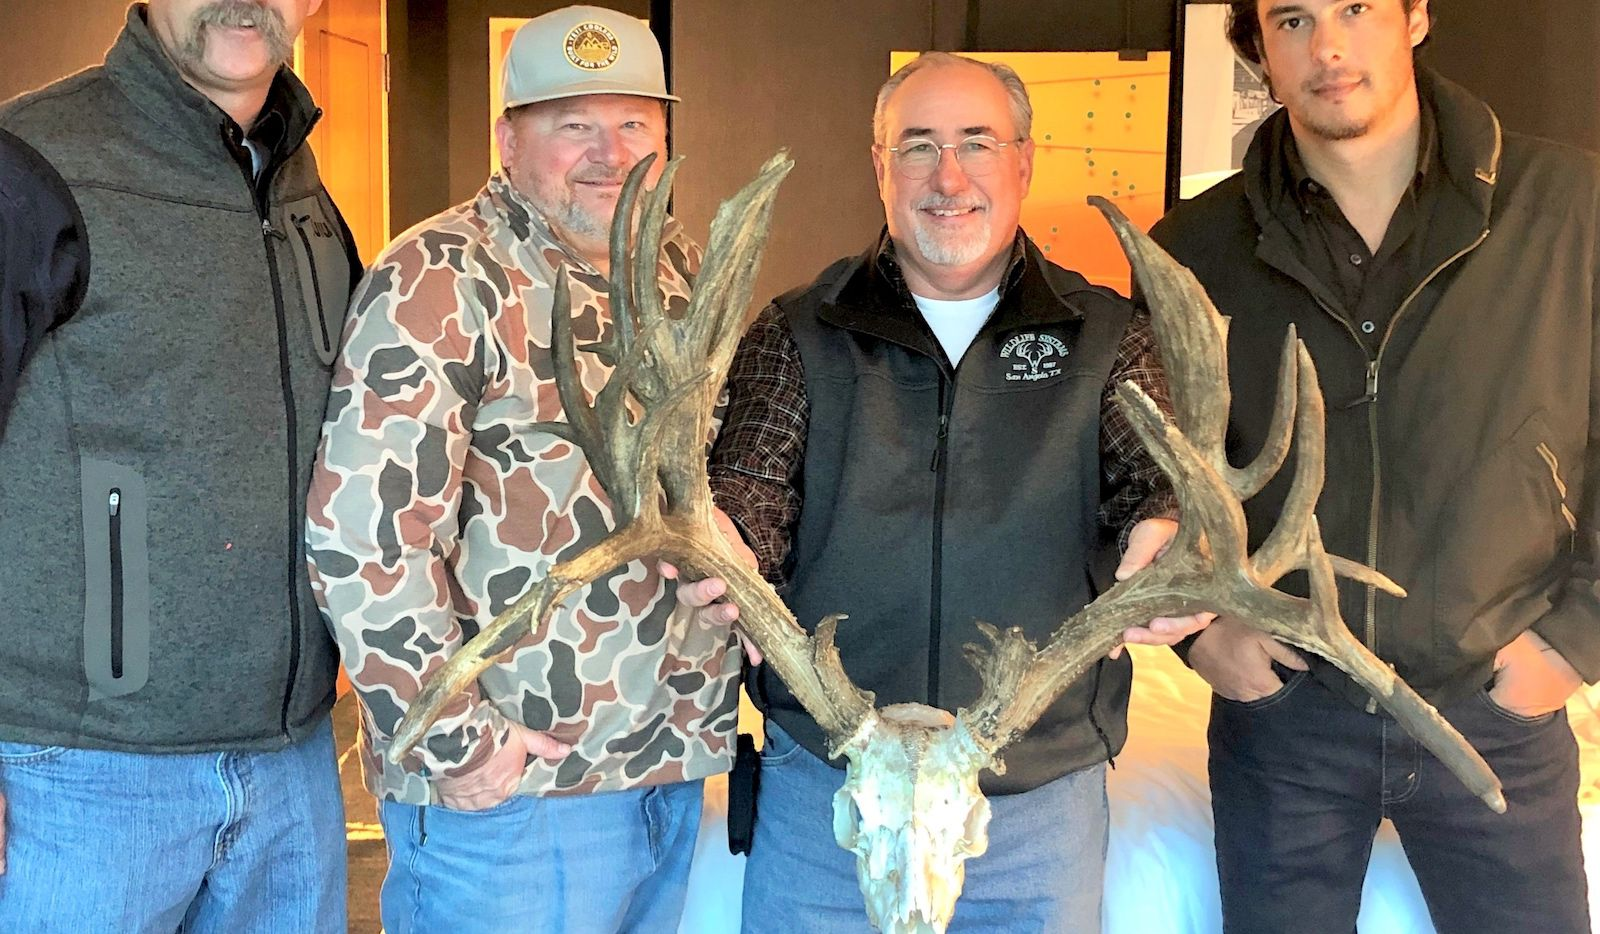 Greg Simons' buck was scored by a three-man panel of certified Boone and Crockett scorers at the Omni Hotel in downtown Dallas. Among the scorers were (left to right) Alan Cain, David Brimager and Craig Bowen (far right).